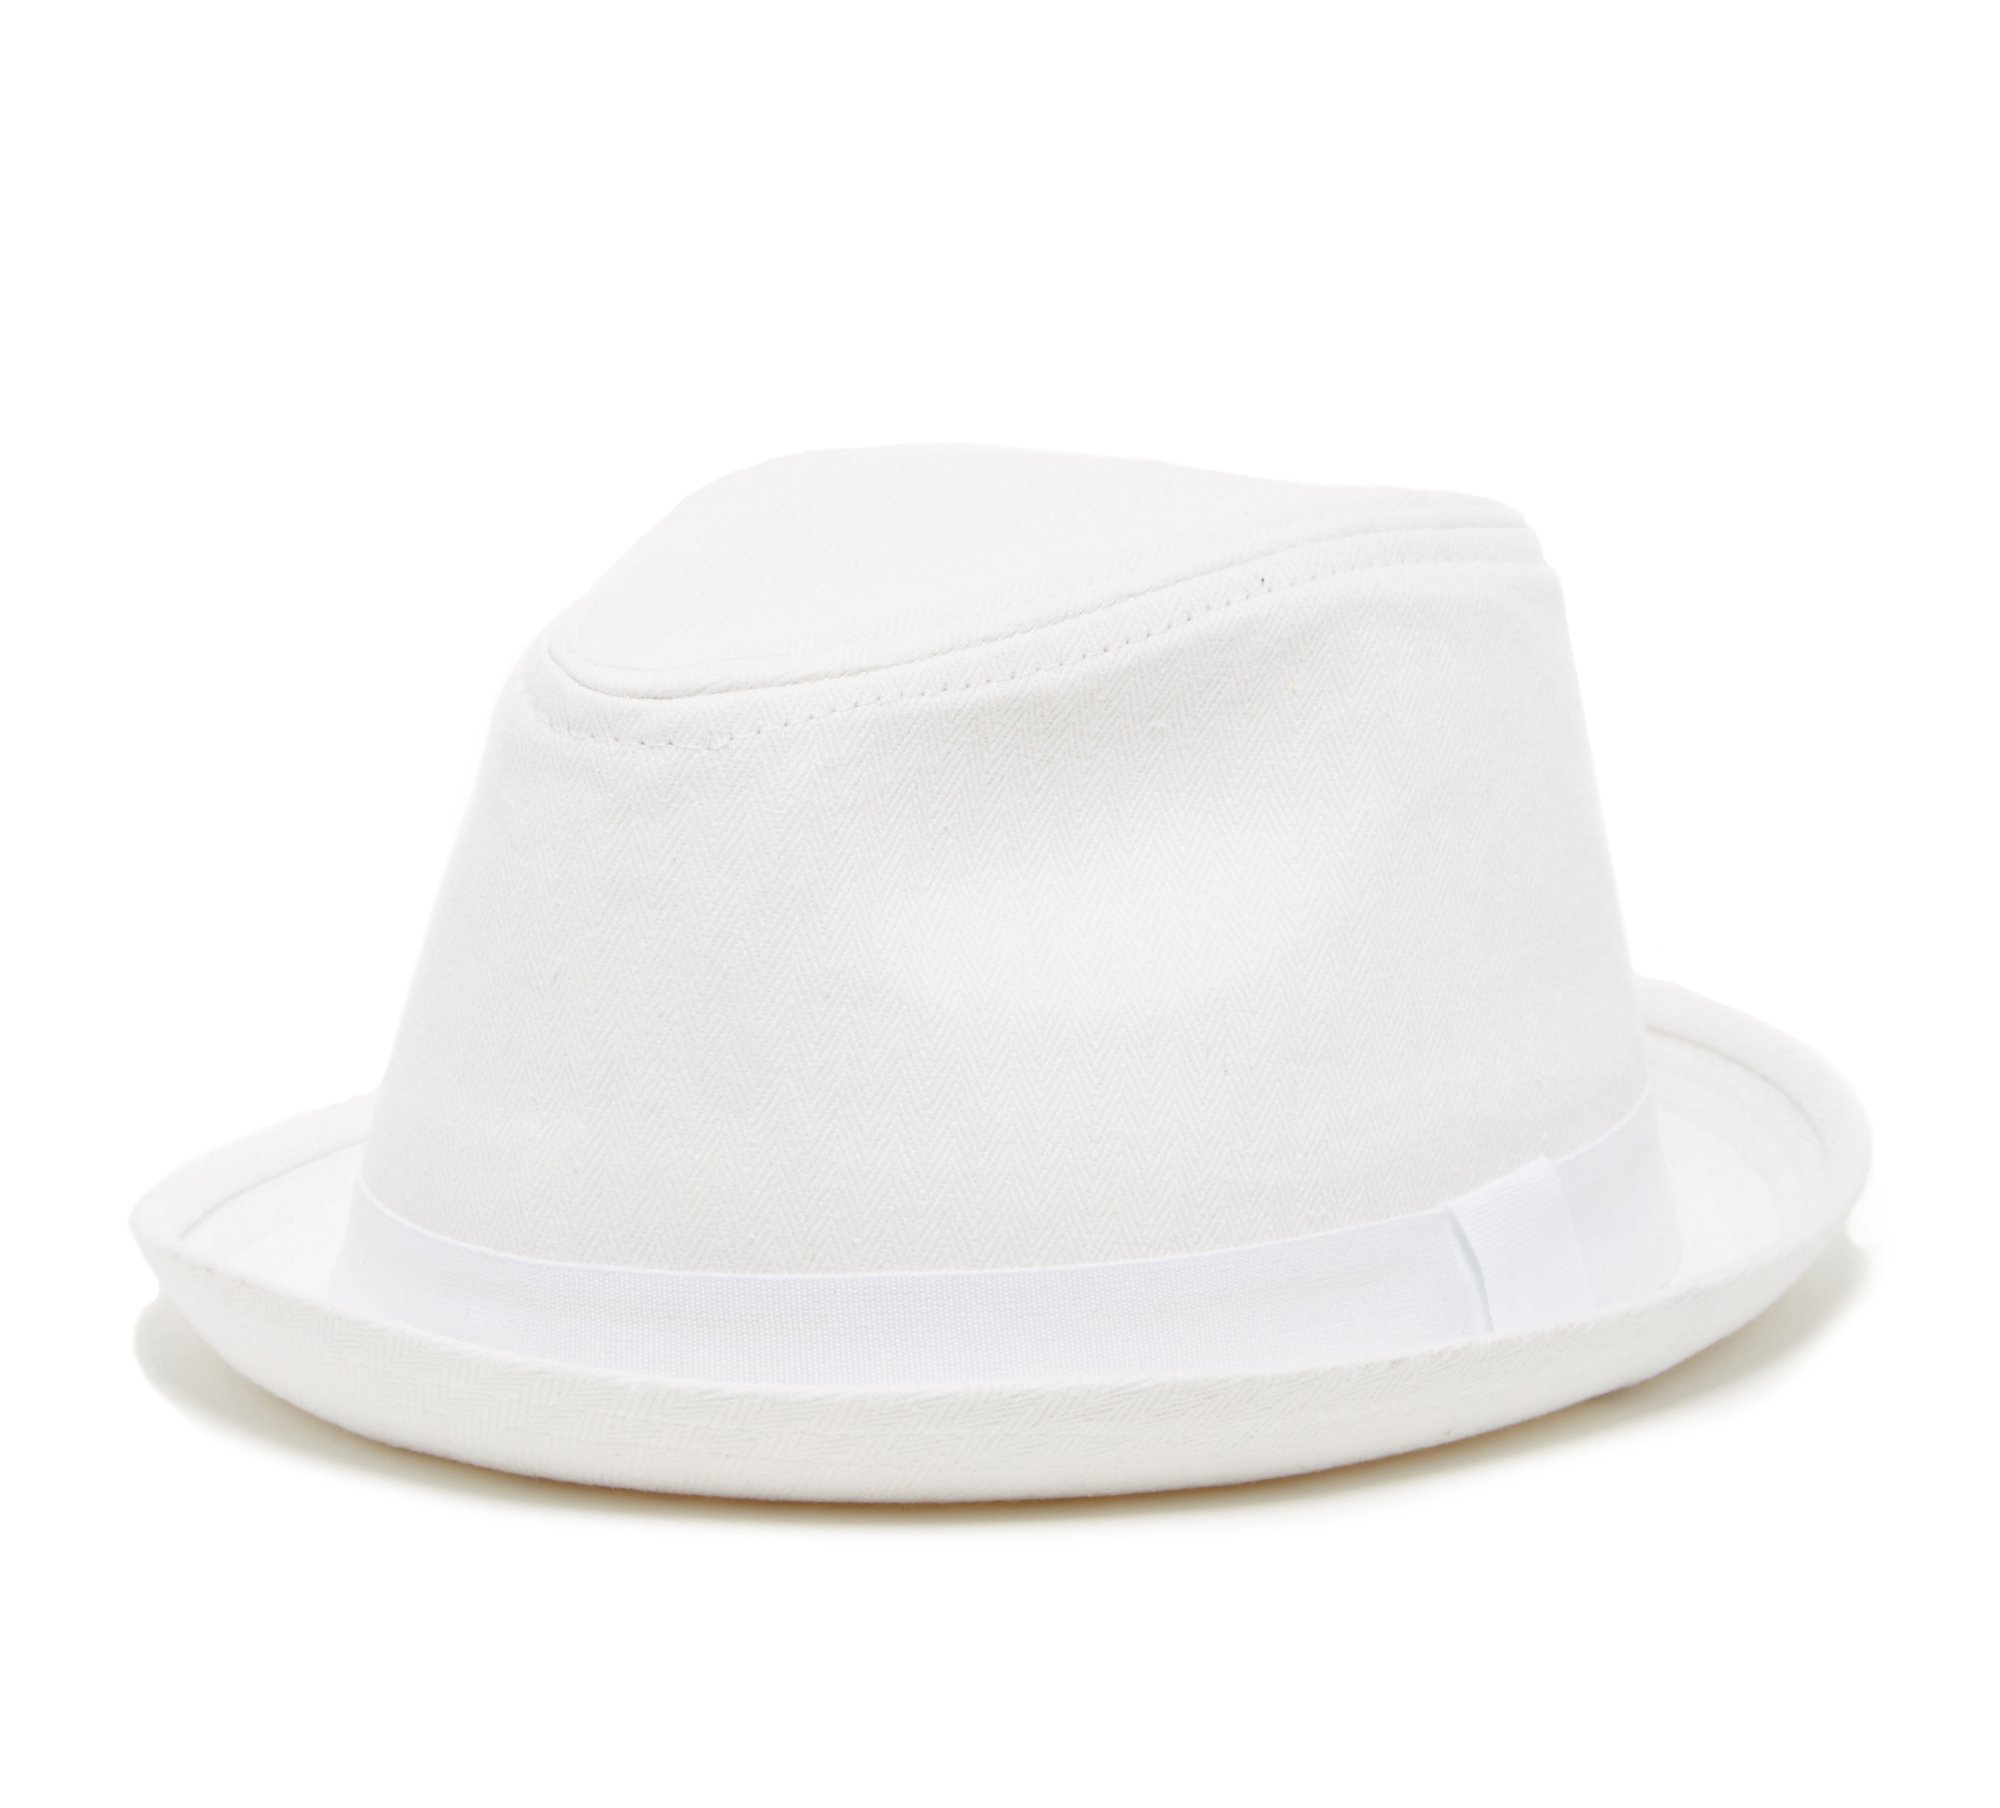 Born to Love Boy's Fedora Hat with White Band (49 cm, White)